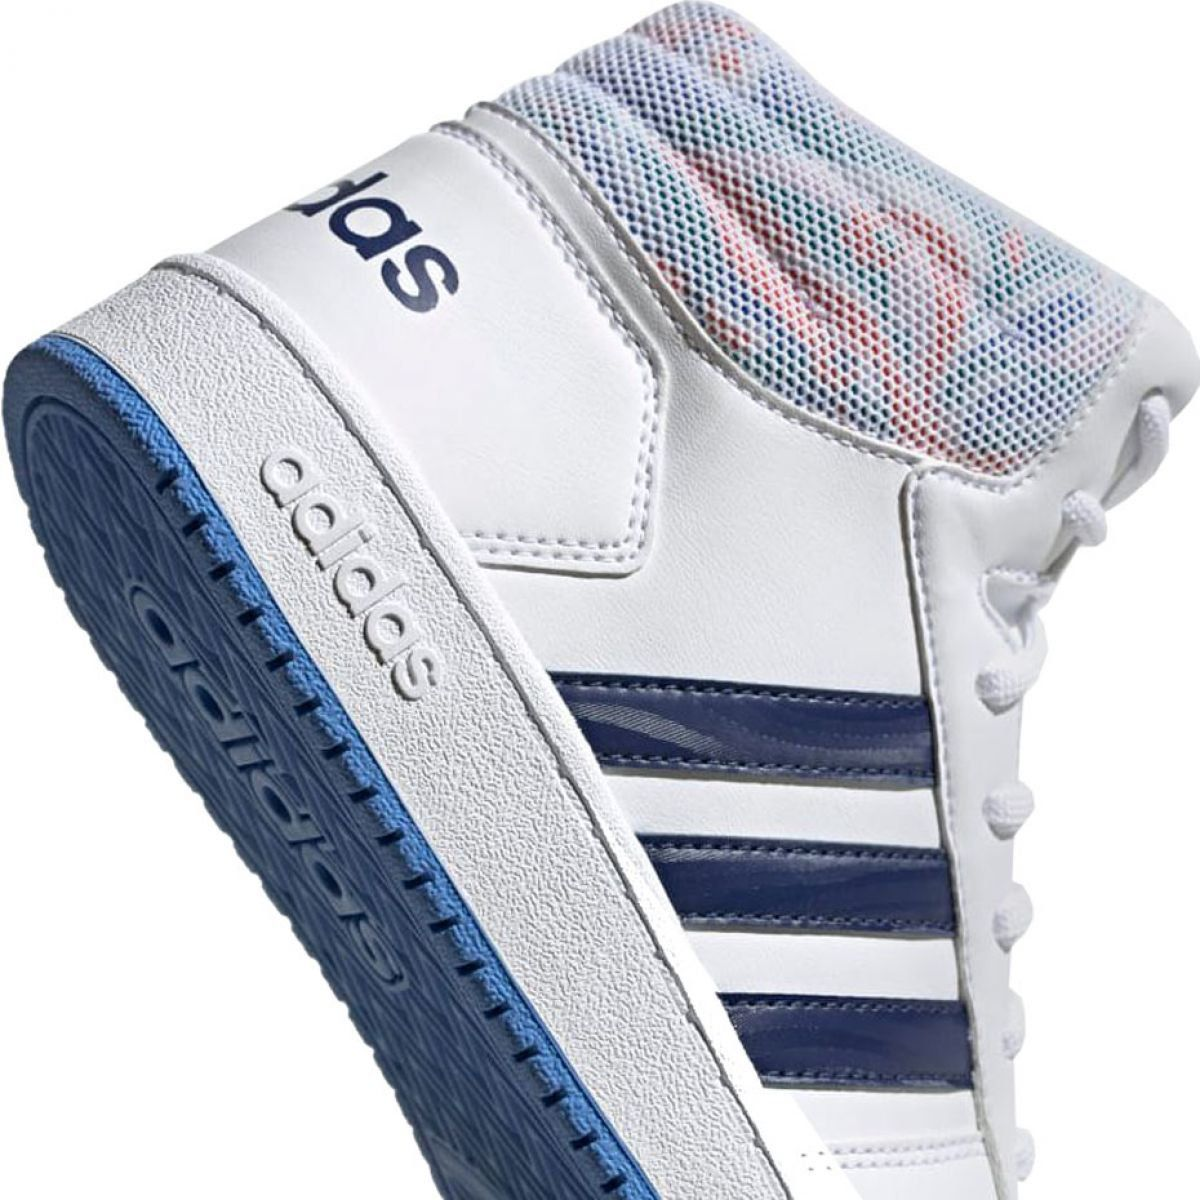 Buty Adidas Hoops Mid 2 0 Jr Ee8546 Biale Sports Shoes Adidas Childrens Shoes Kid Shoes